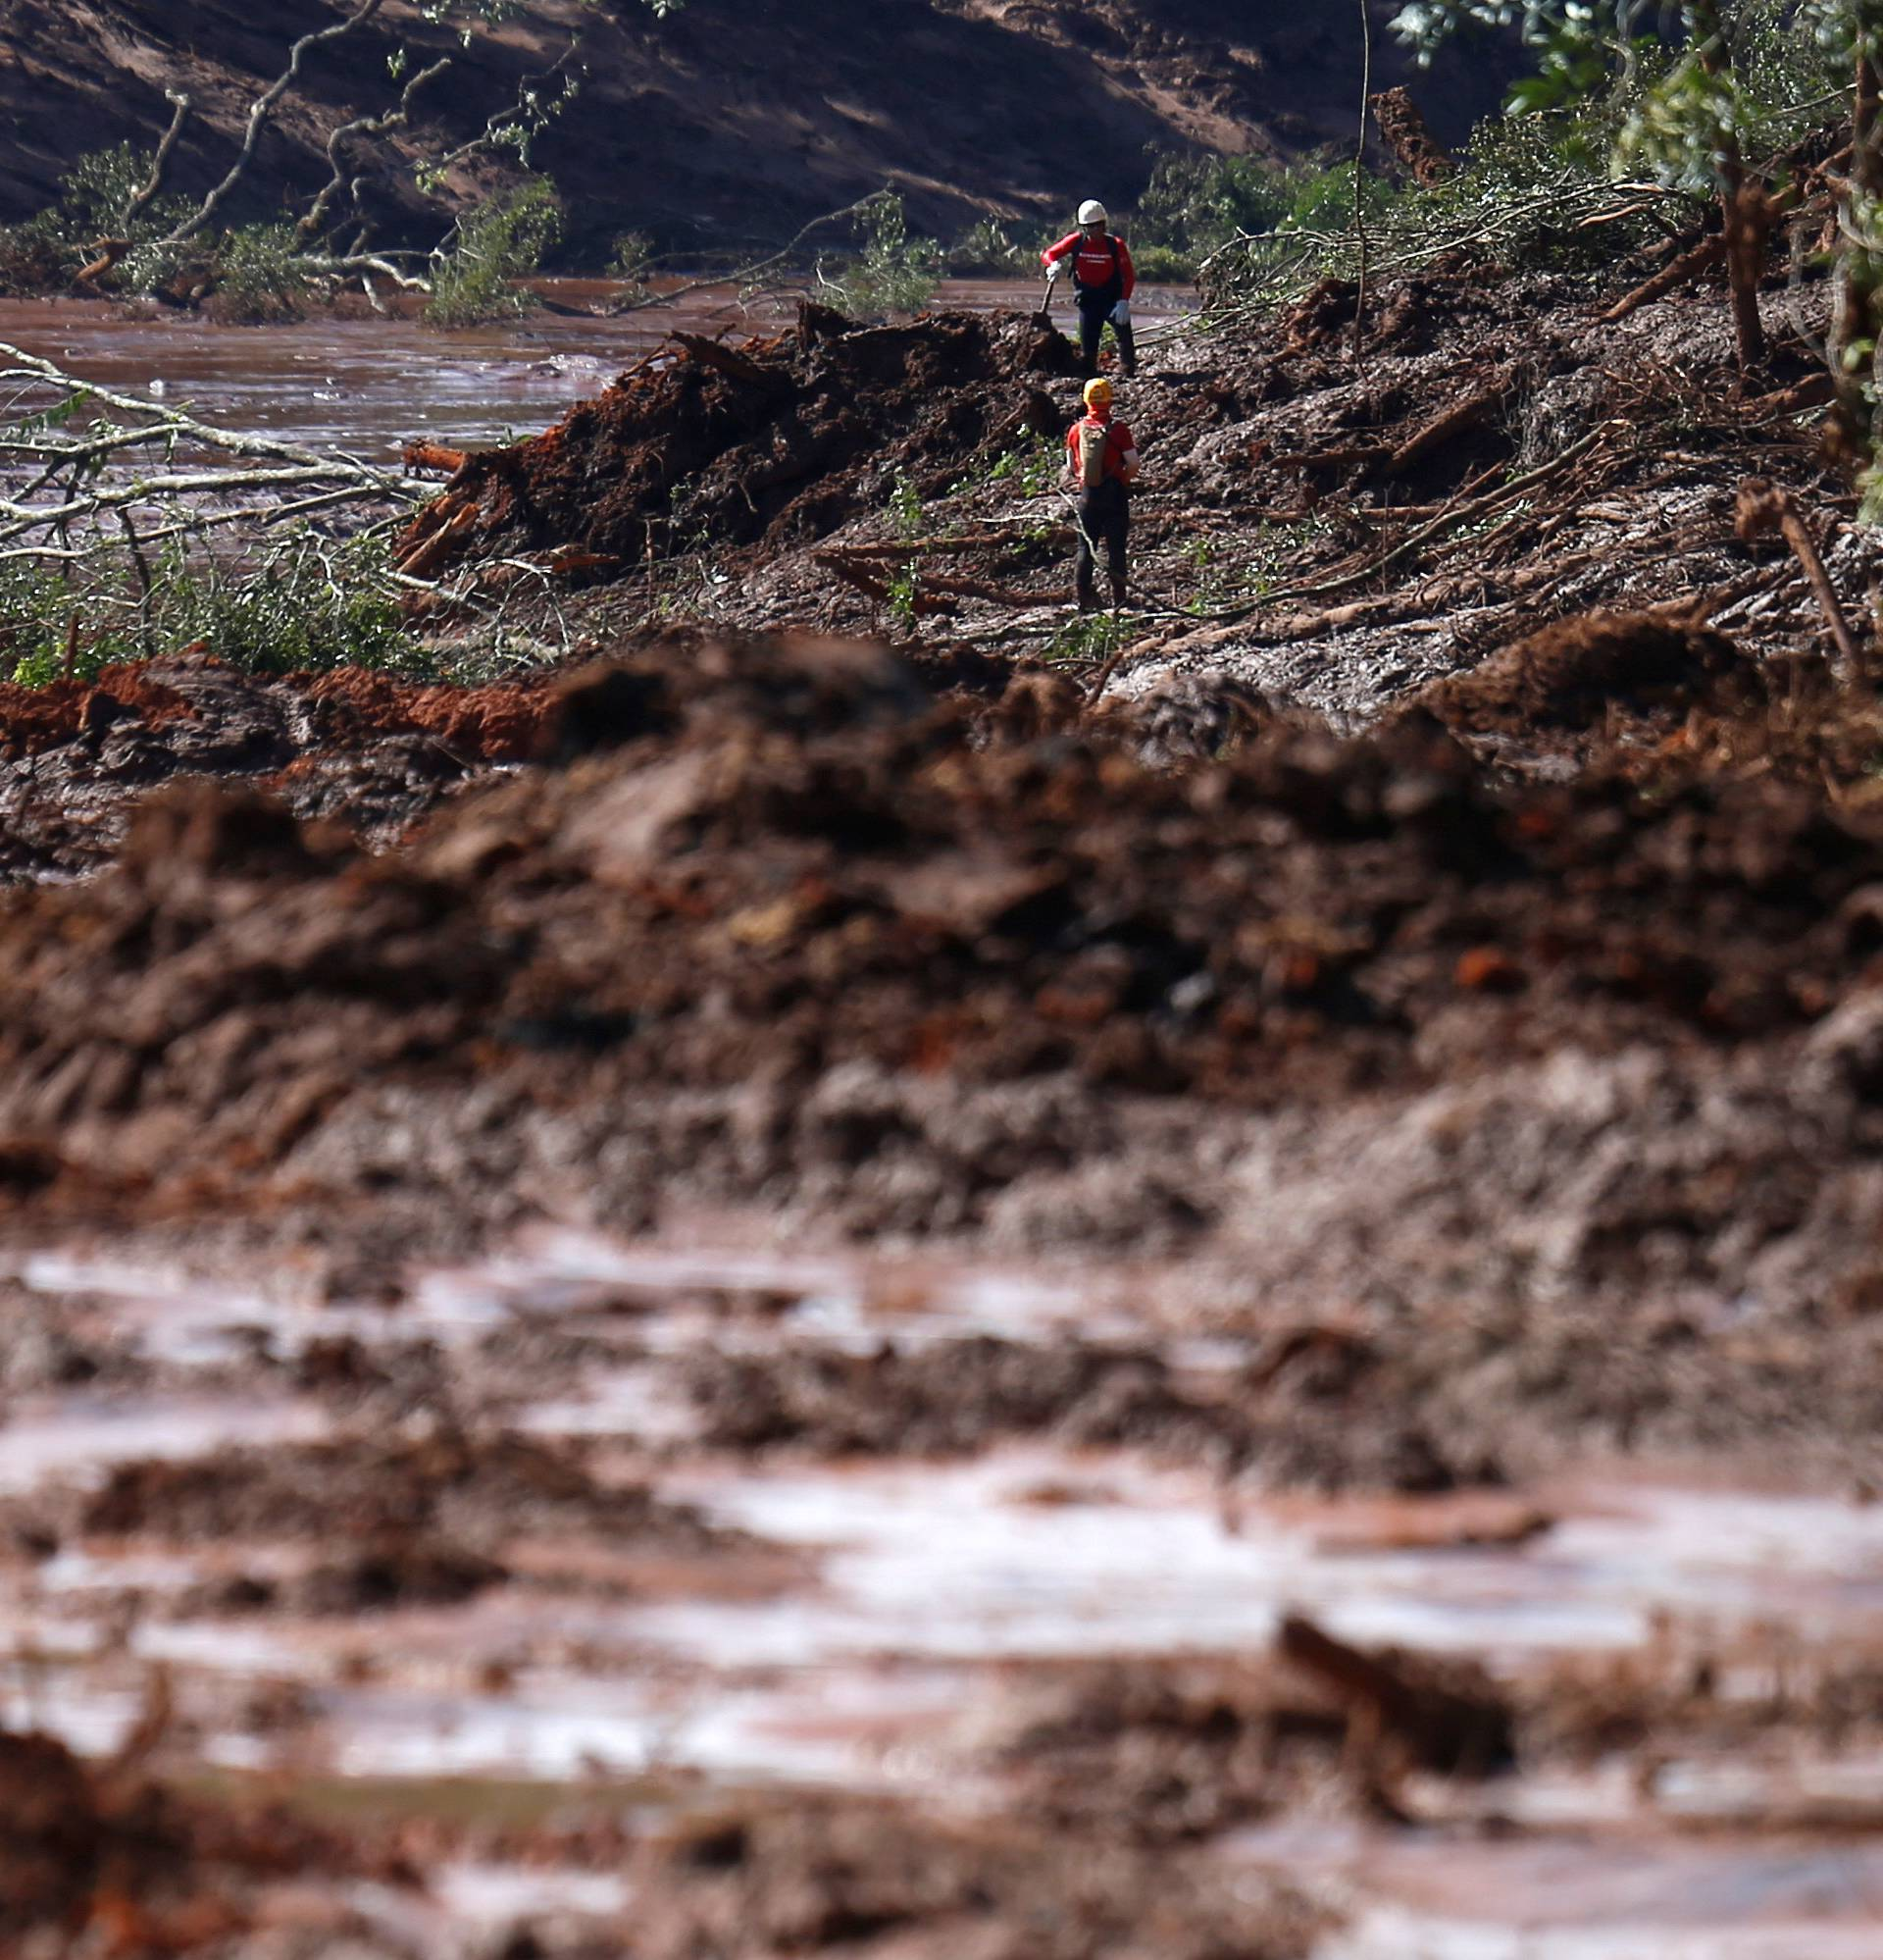 Rescue workers search for victims after a tailings dam owned by Brazilian miner Vale SA burst, in Brumadinho